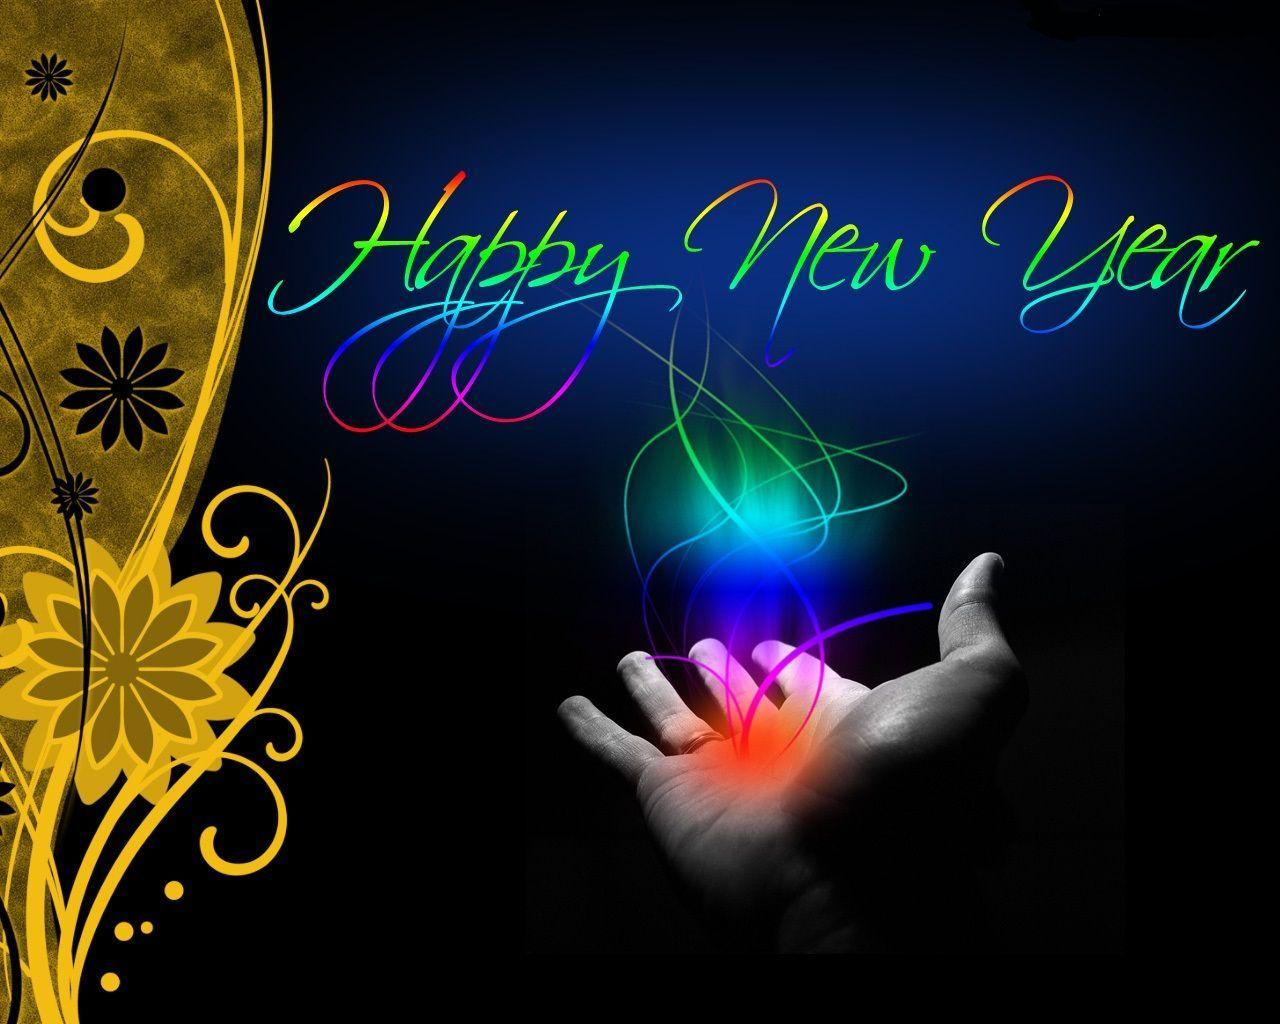 happy_new_year_wallpaper 7jpg download 298 save as favorite 0 comments 0 share on twitter happy new year beautiful hd images